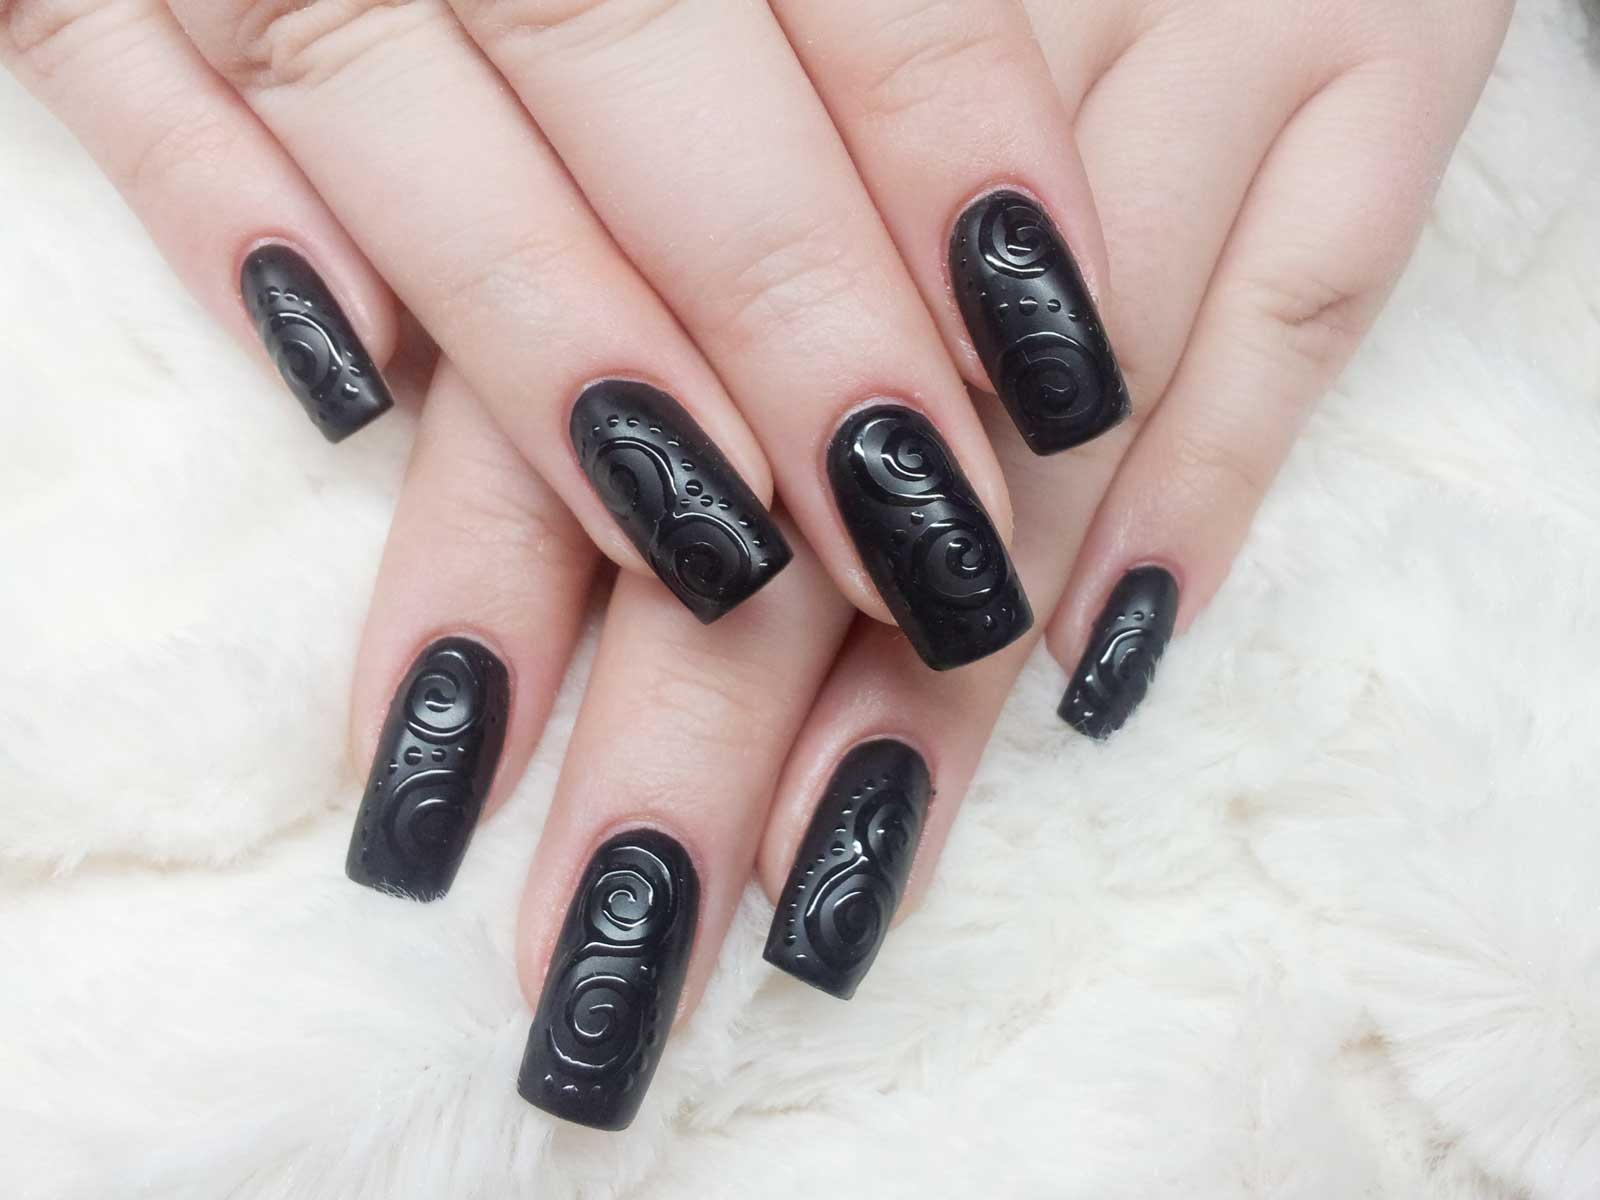 Nageldesign Mit Schwarz Trendiges Design Im Matt Look